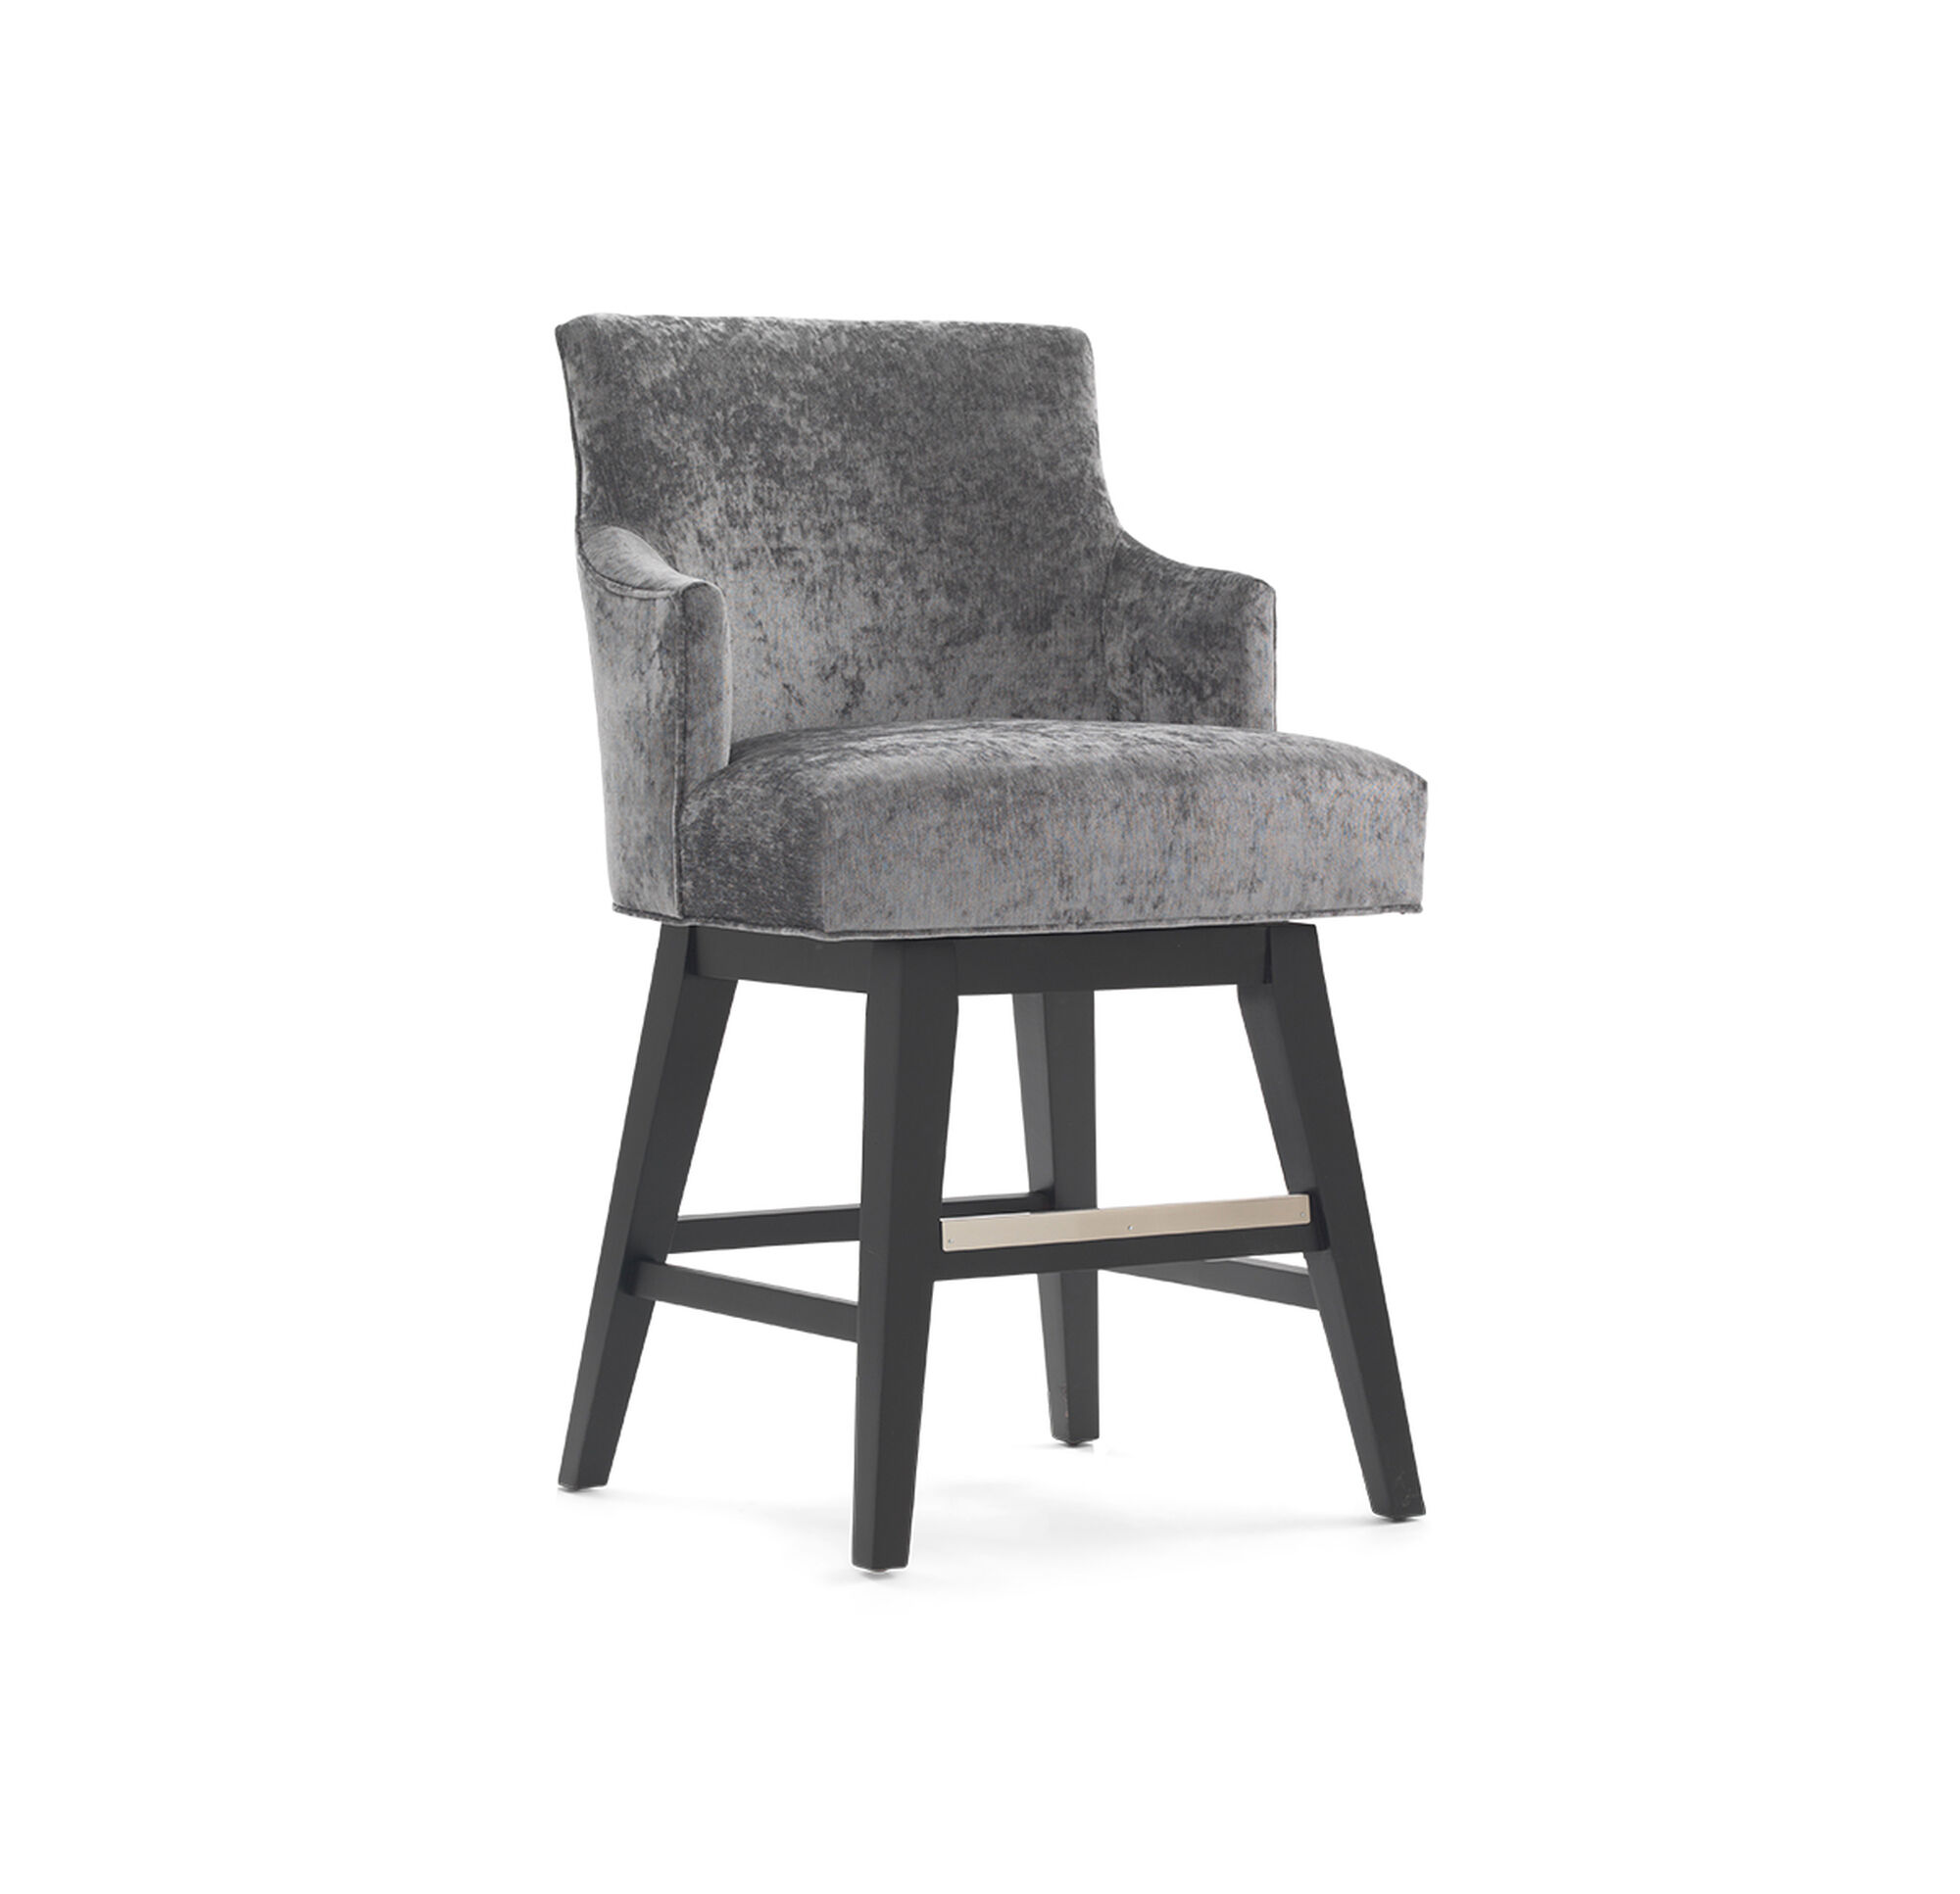 Upholstered Counter Chairs Knicker Counter Stool